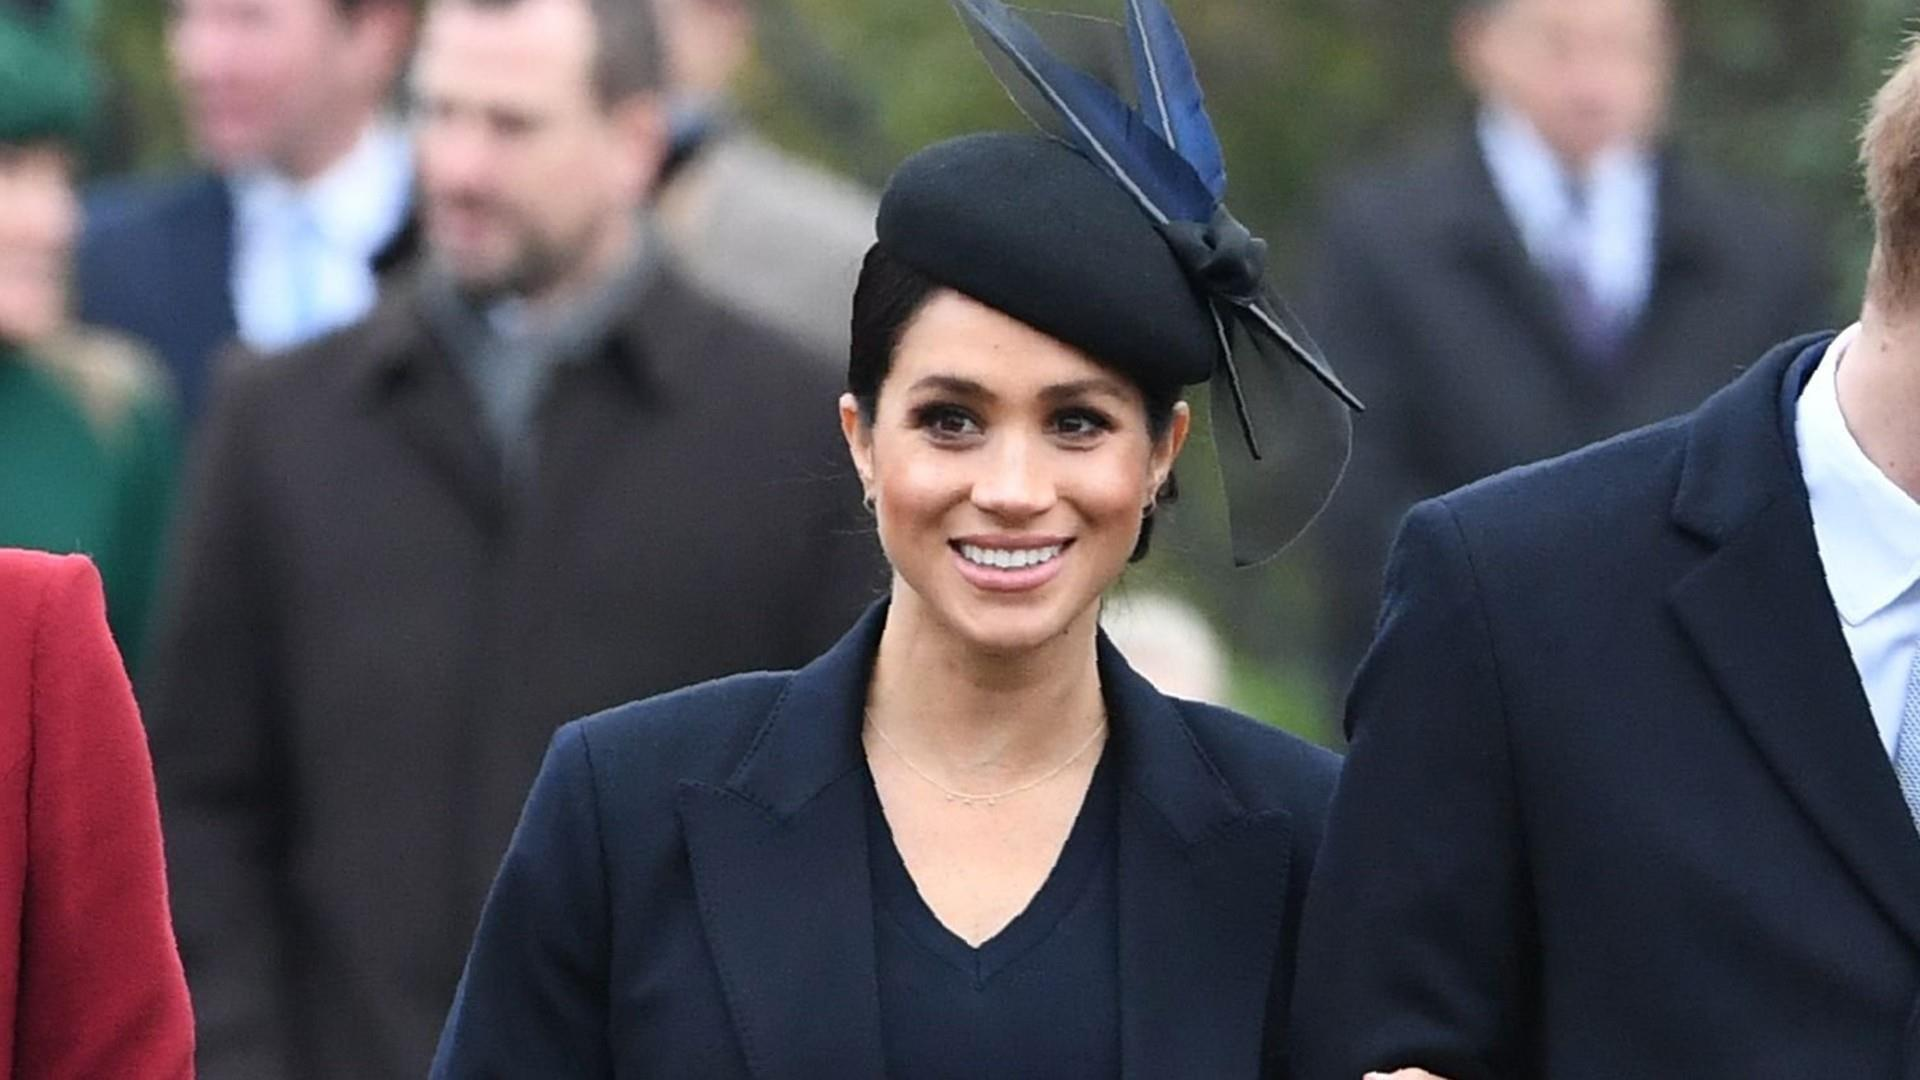 Royal Christmas.How Meghan Markle Will Spend Her 1st Christmas As A Royal